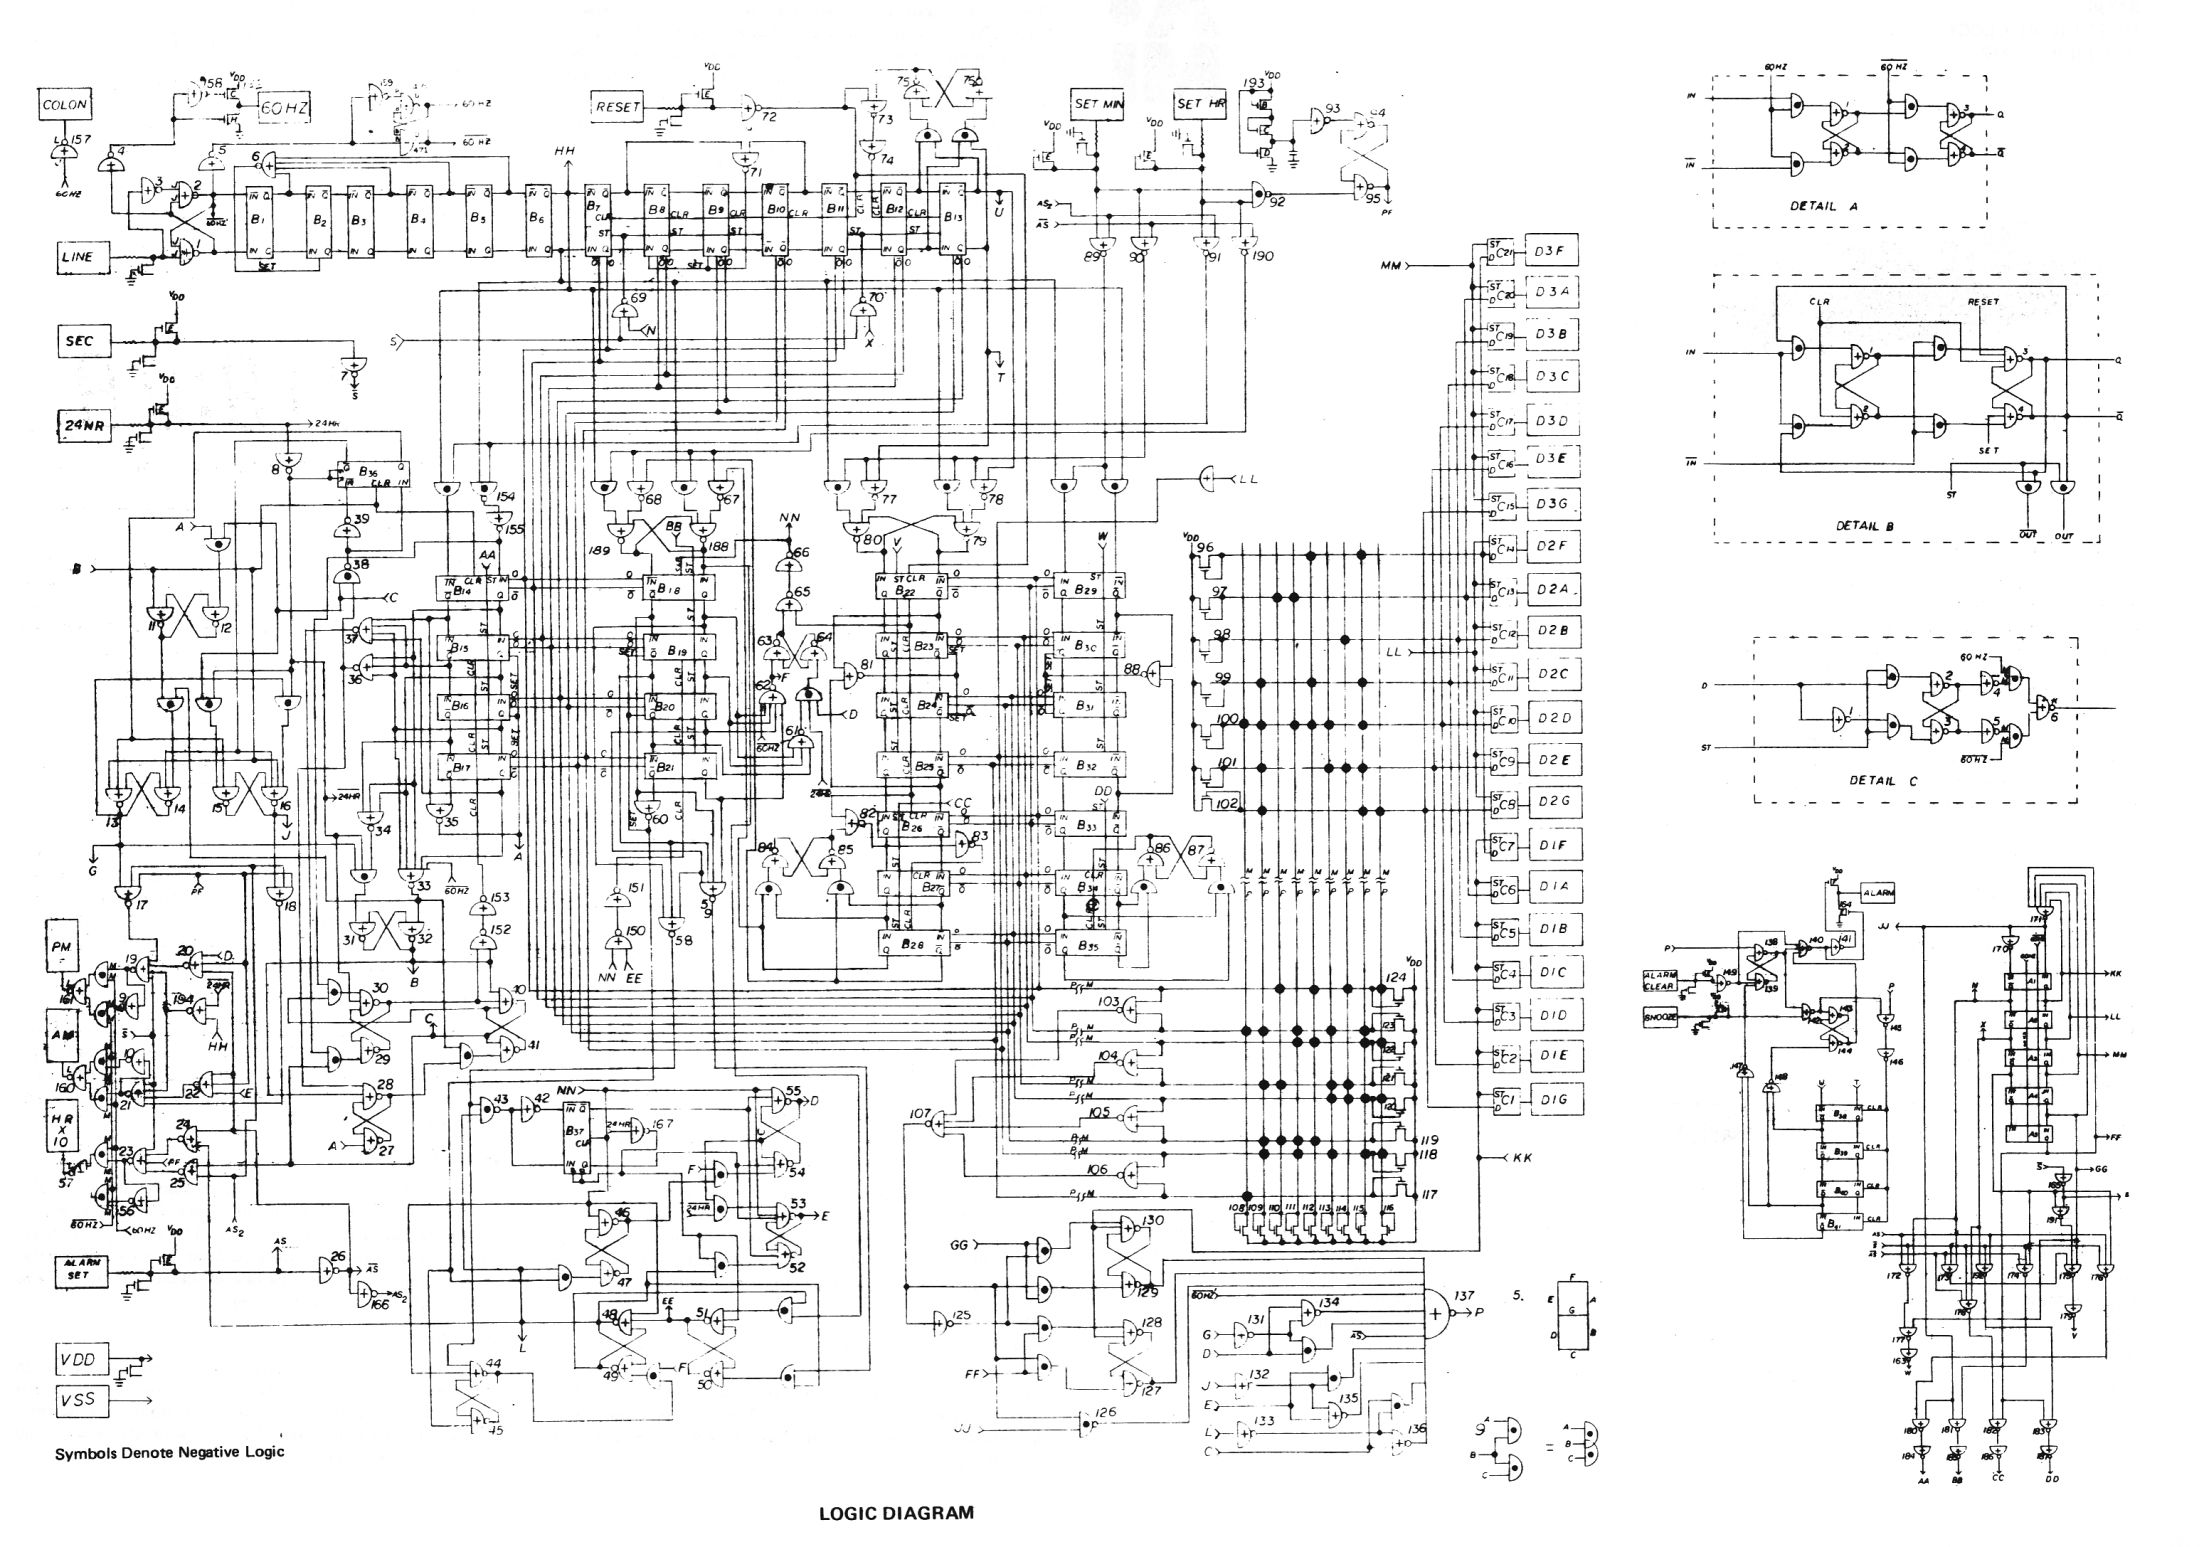 Index Of Images 1968 Mustang Wiring Schematic Ami S1736 Logic Diagram